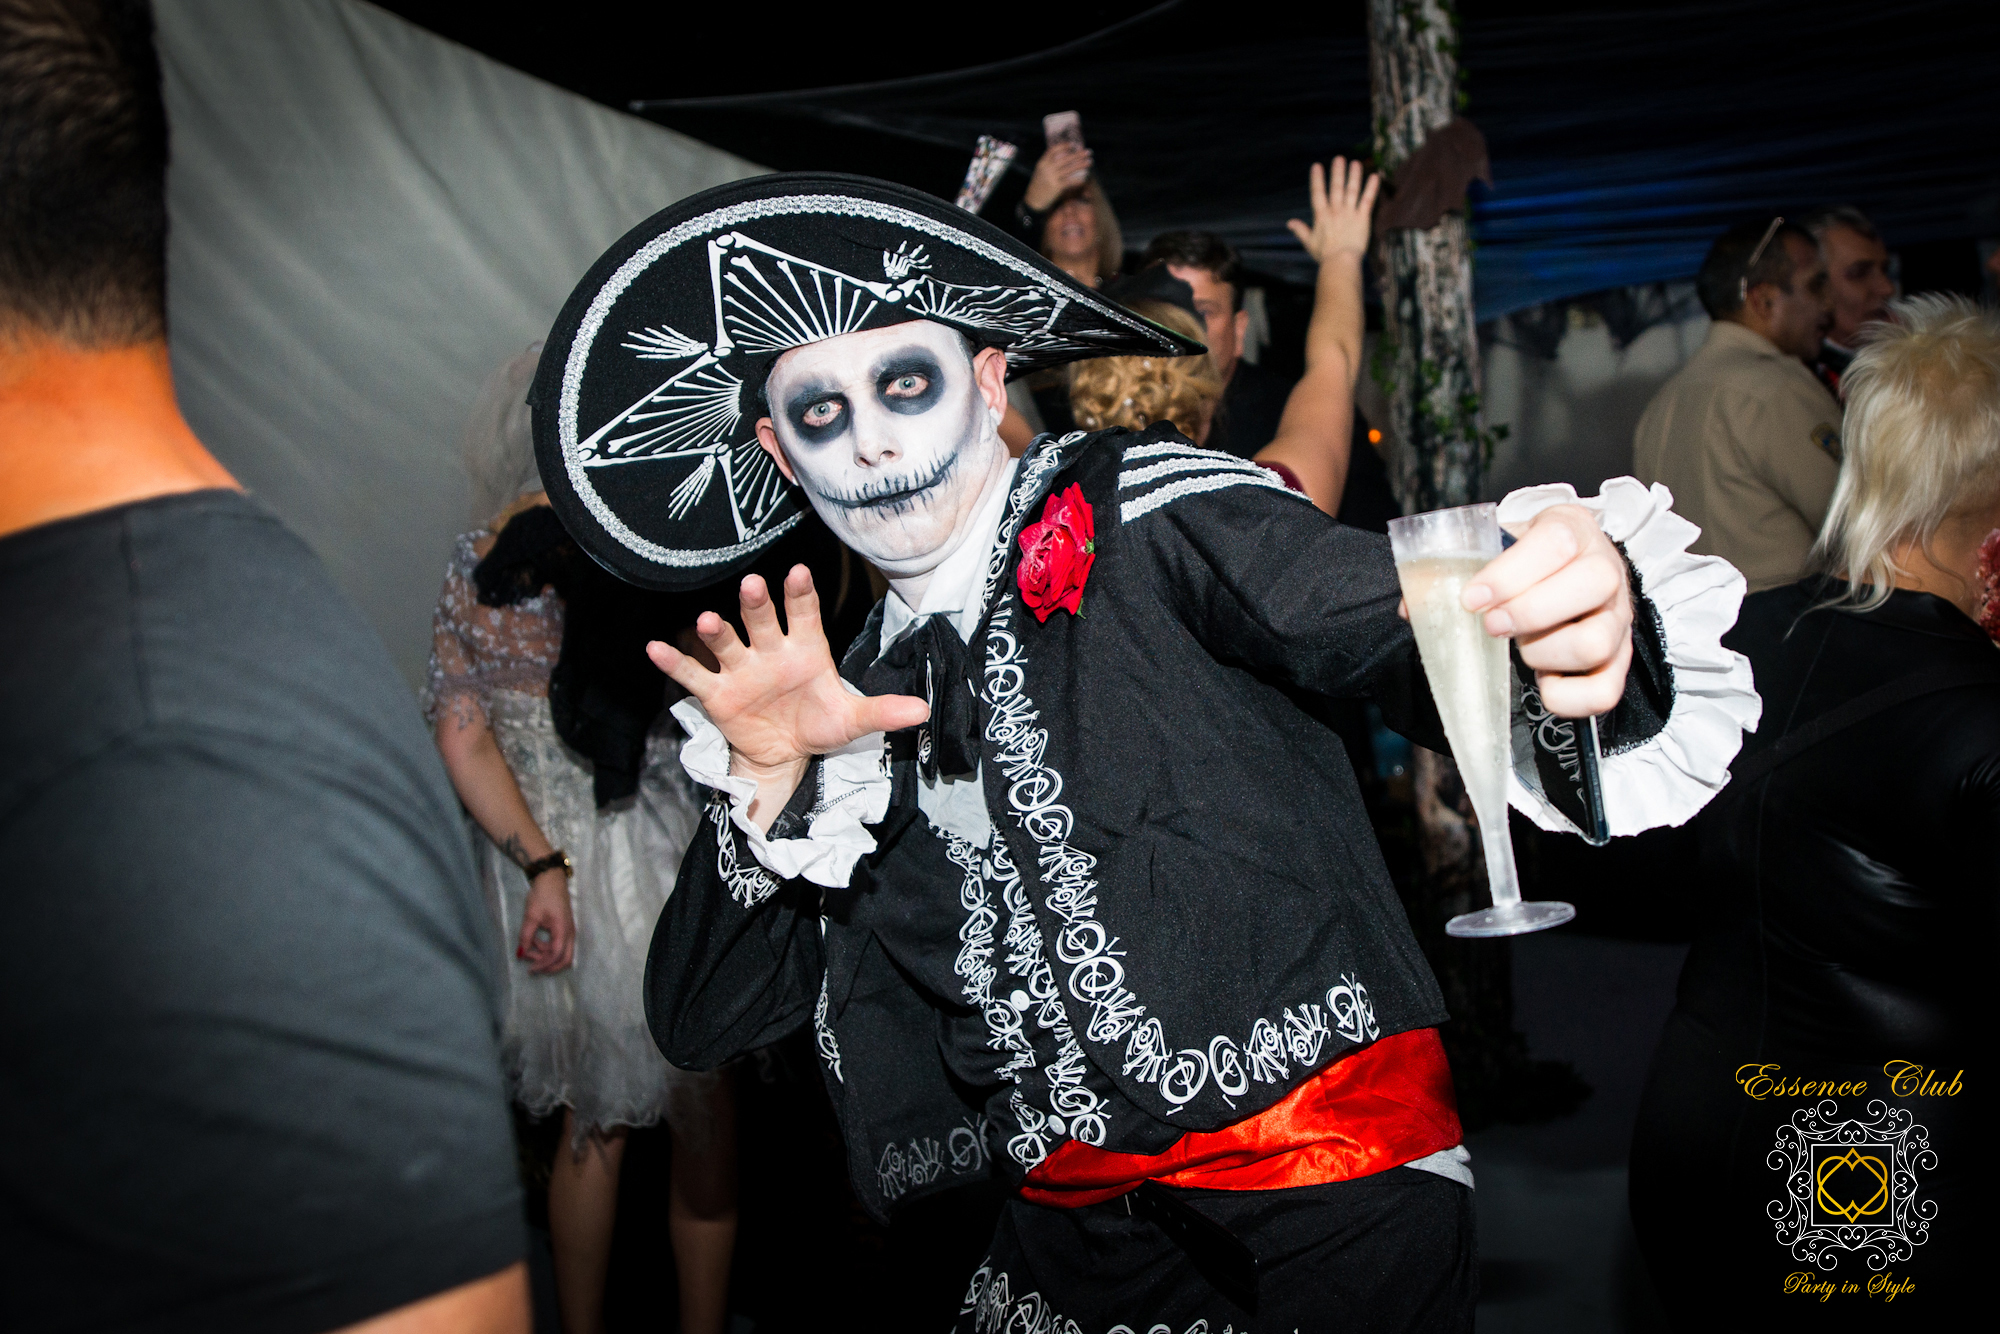 Halloween party fun and frolics